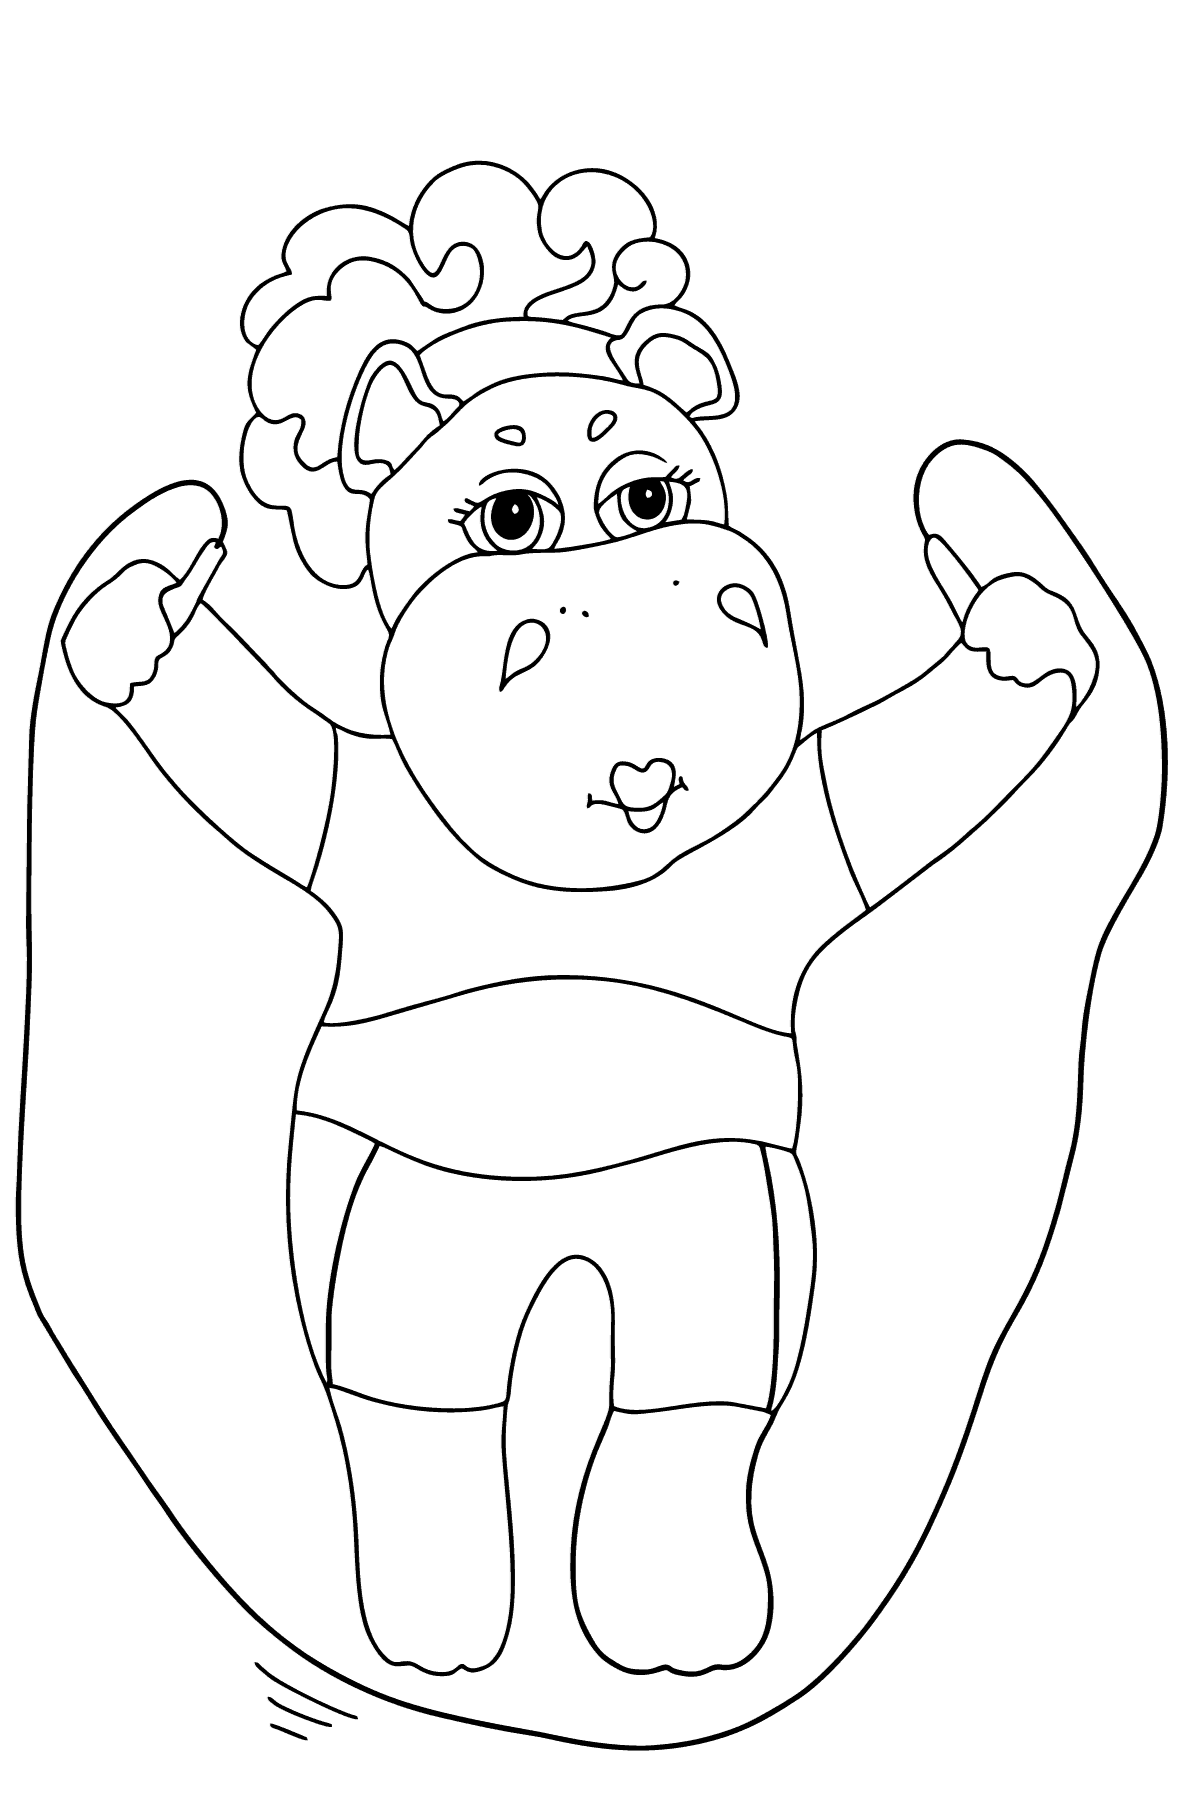 Coloring Page - A Hippo is Jumping on a Rope for Kids